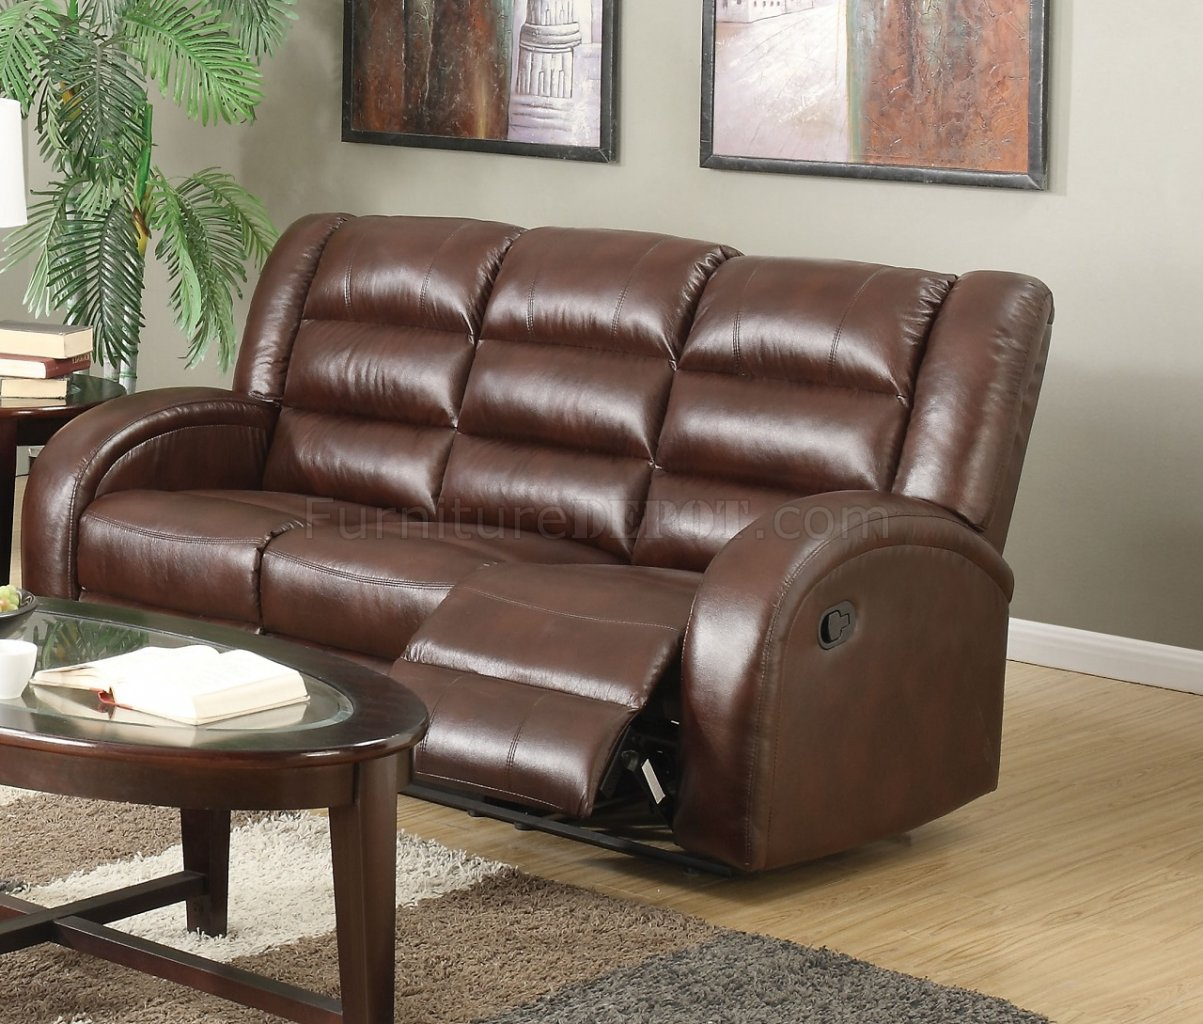 acme sectional sofa chocolate cheap sets in uganda dacey lynn 53565 brown leather aire by w options